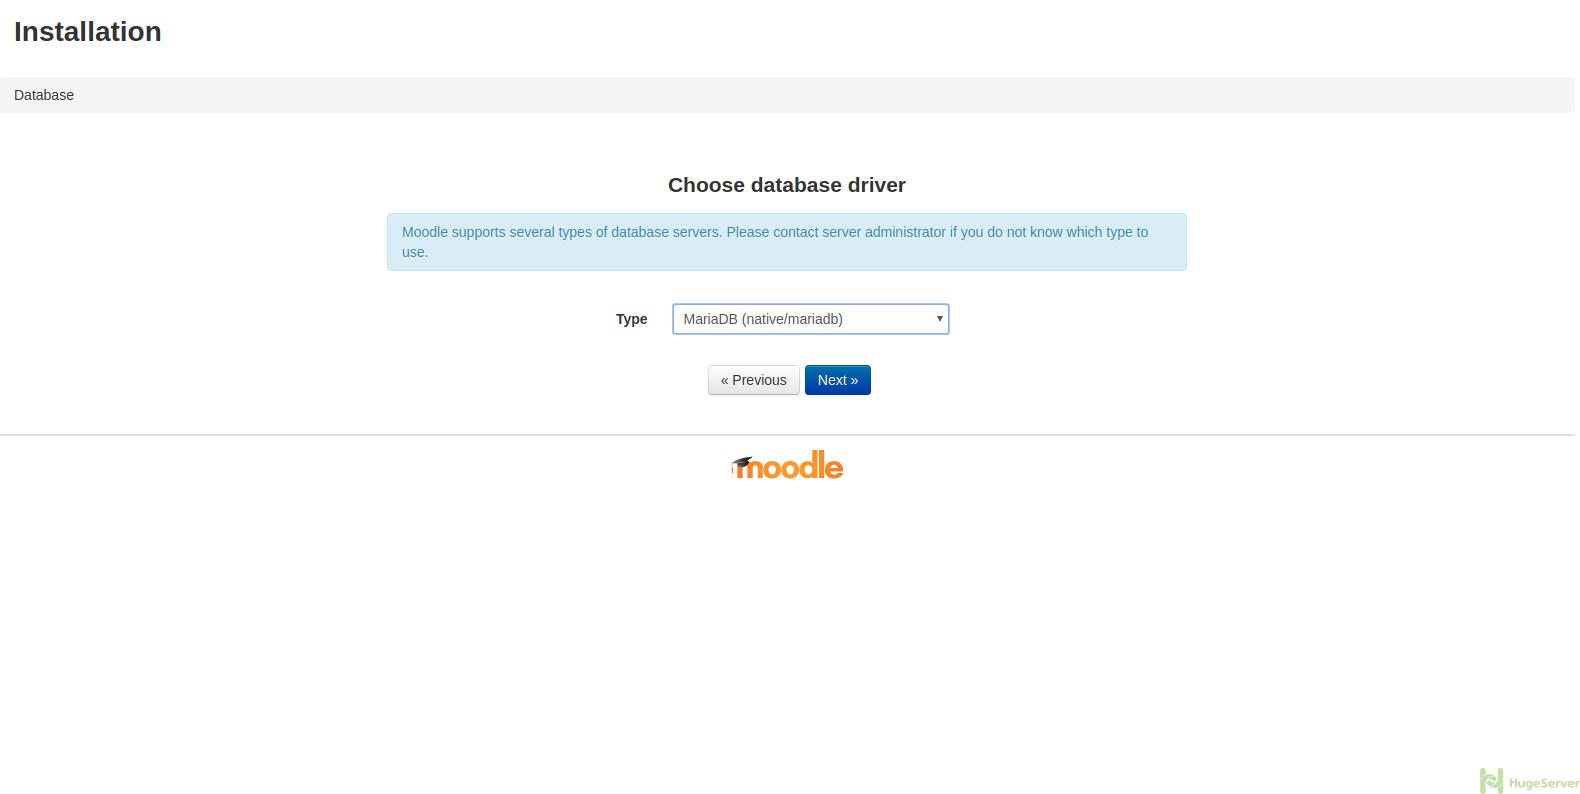 How to install Moodle on CentOS 7